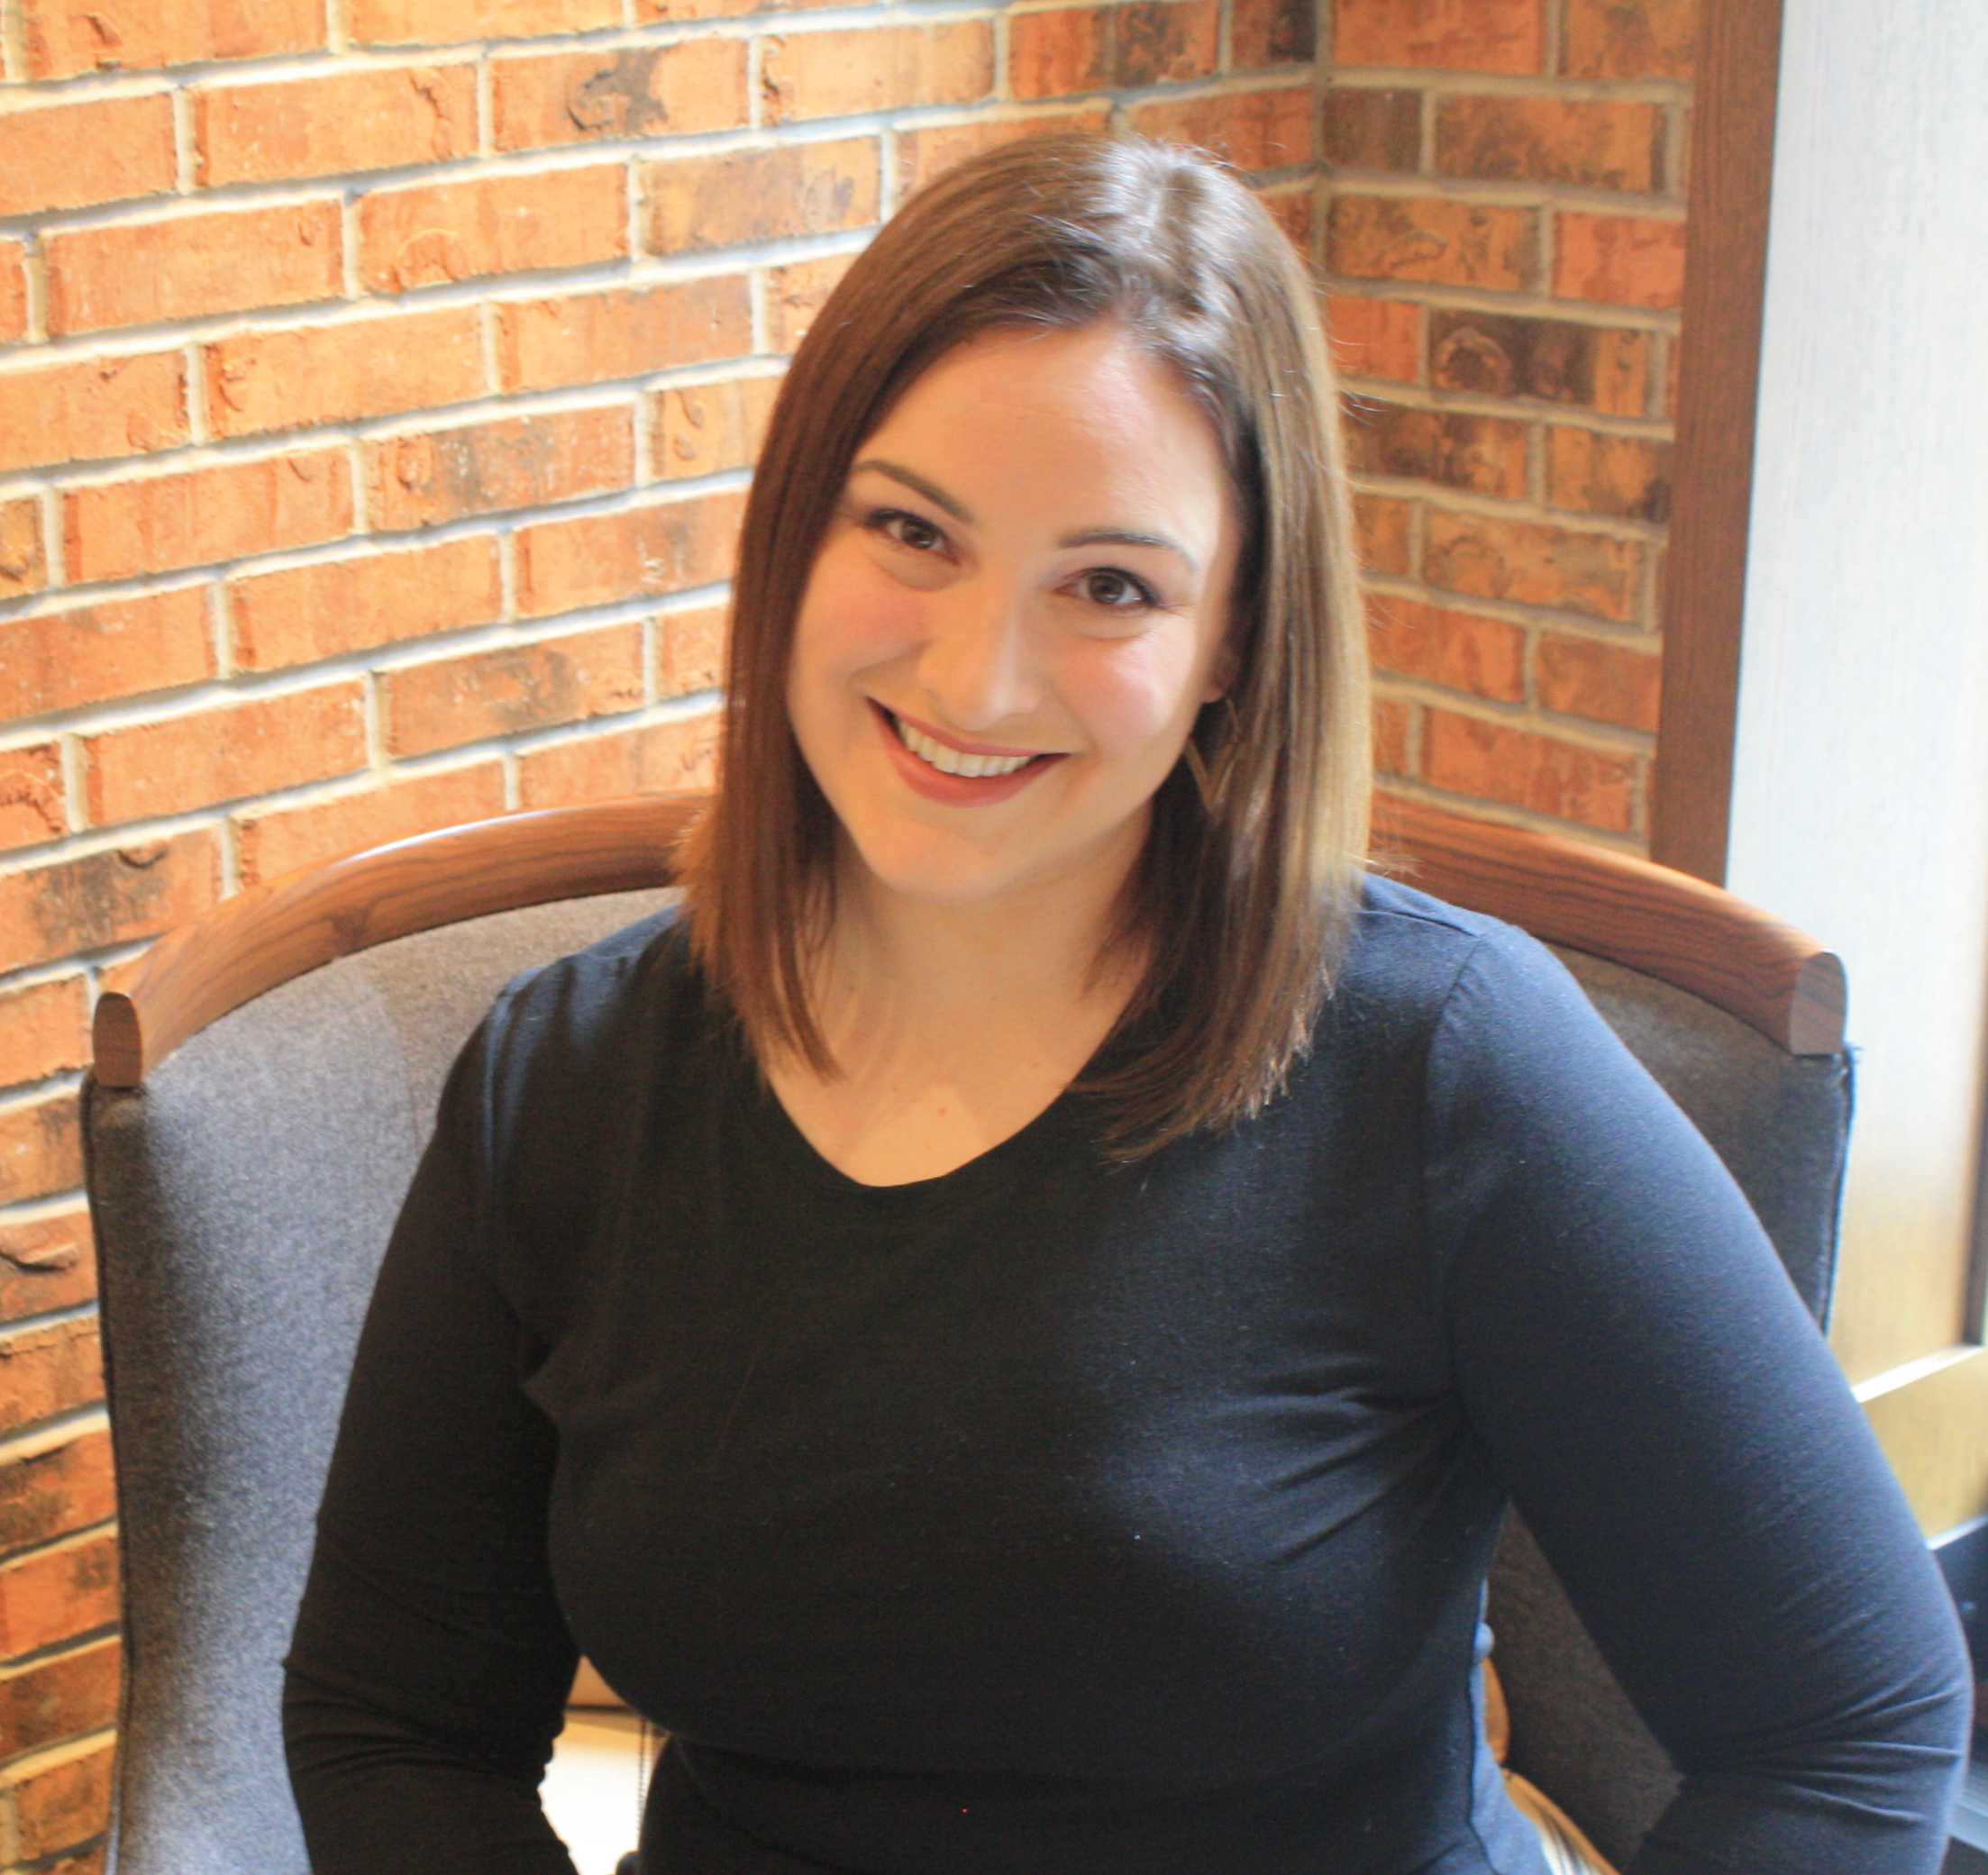 Meet Sarah - a coach and consultant for fashion brands and wholesale businesses